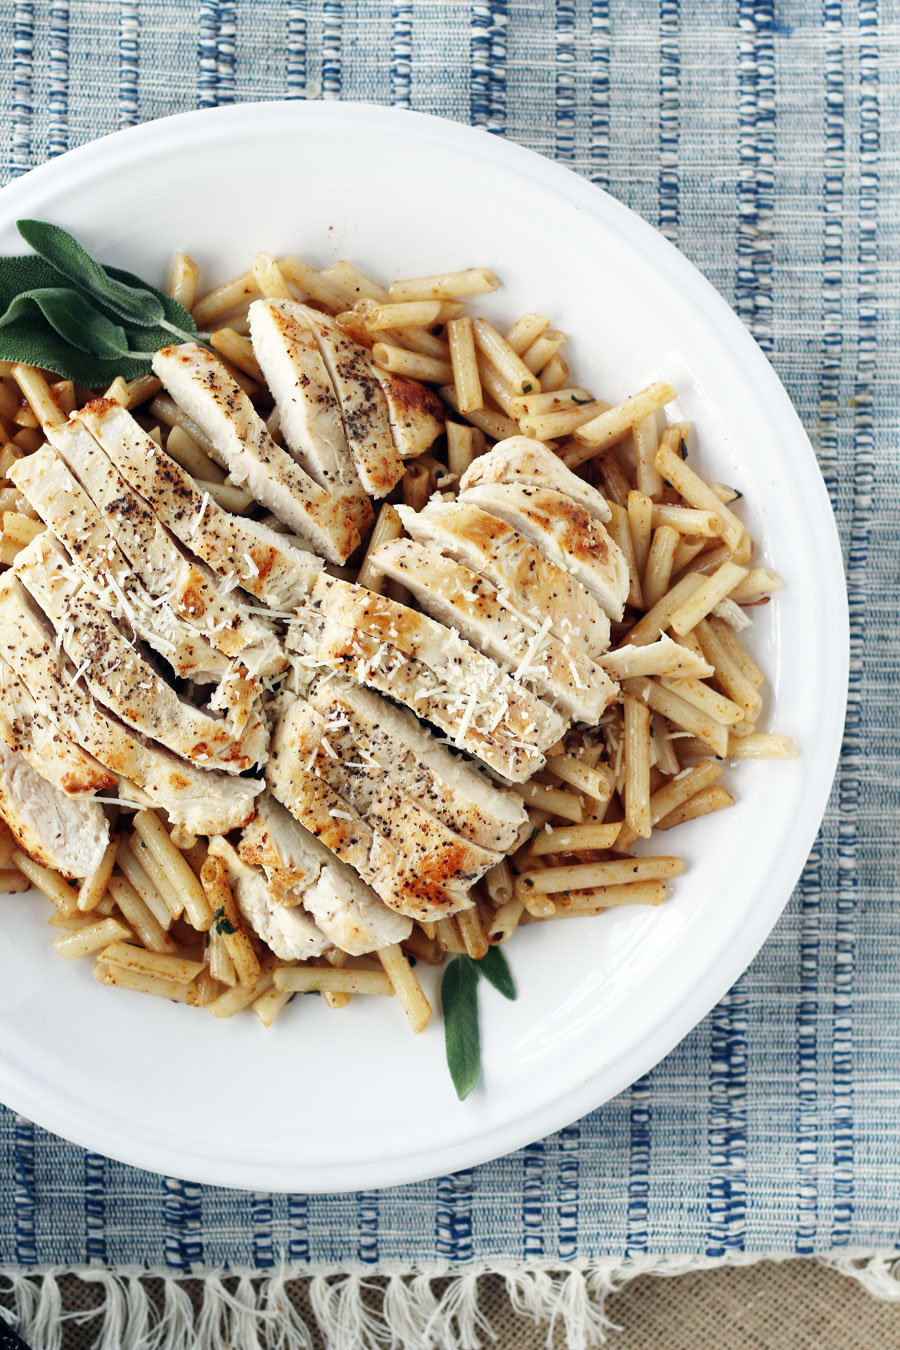 This hearty and rustic dish is simple to make, using wholesome ingredients. Brown Butter + Sage Chicken Penne Pasta